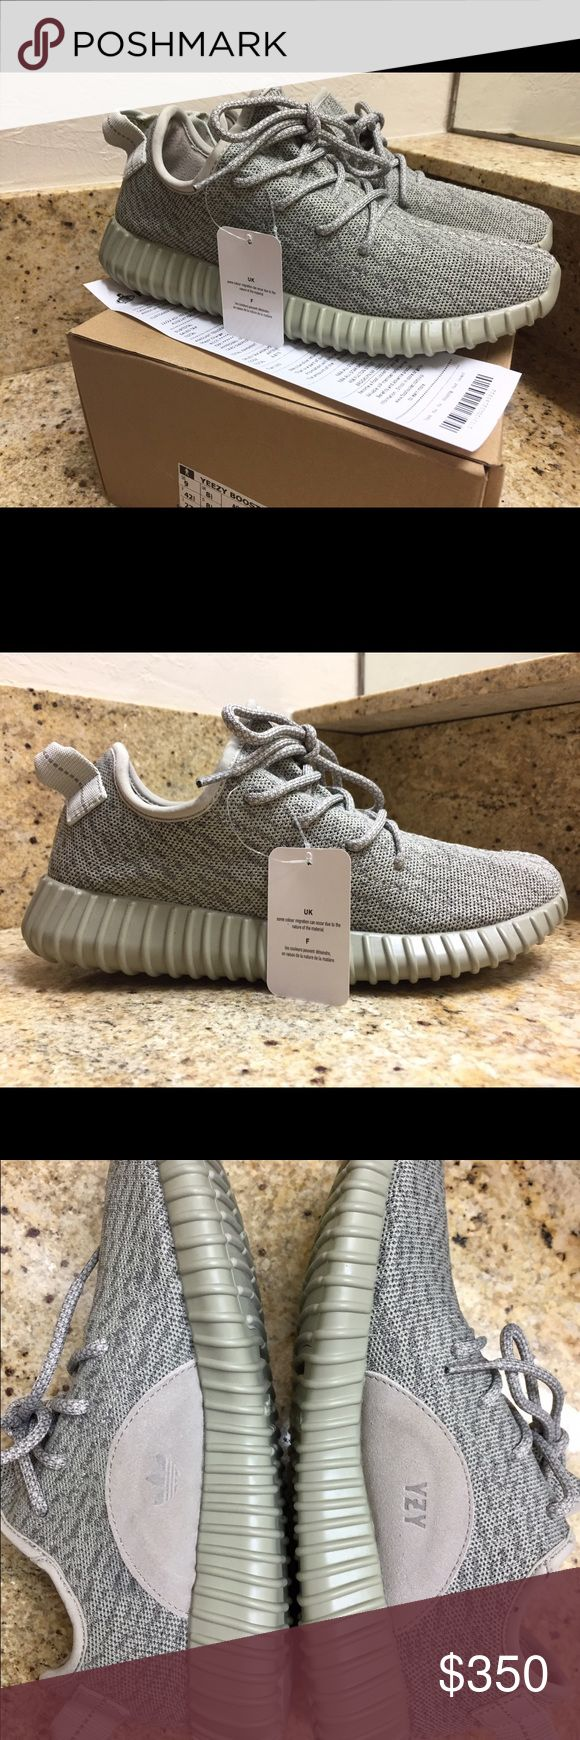 adidas yeezy zebra box tagalog adidas outlet store locations near me in dc